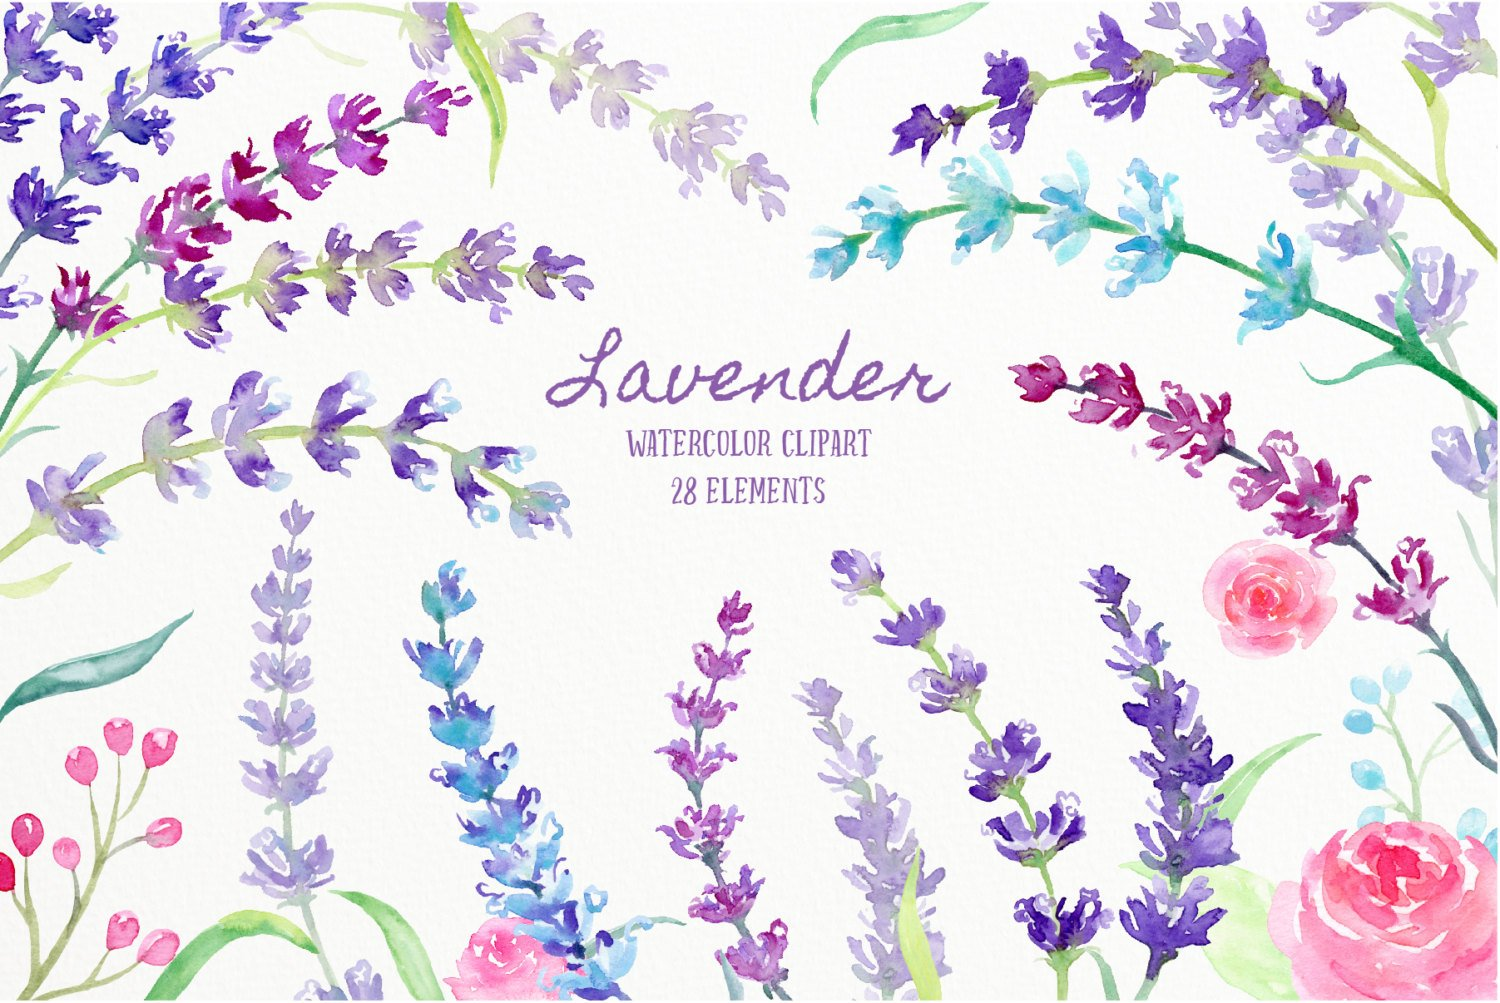 Watercolor Clipart Lavender, sprig of lavender, lavender flowers, blue,  pink, purple herb for instant download scrapbook.